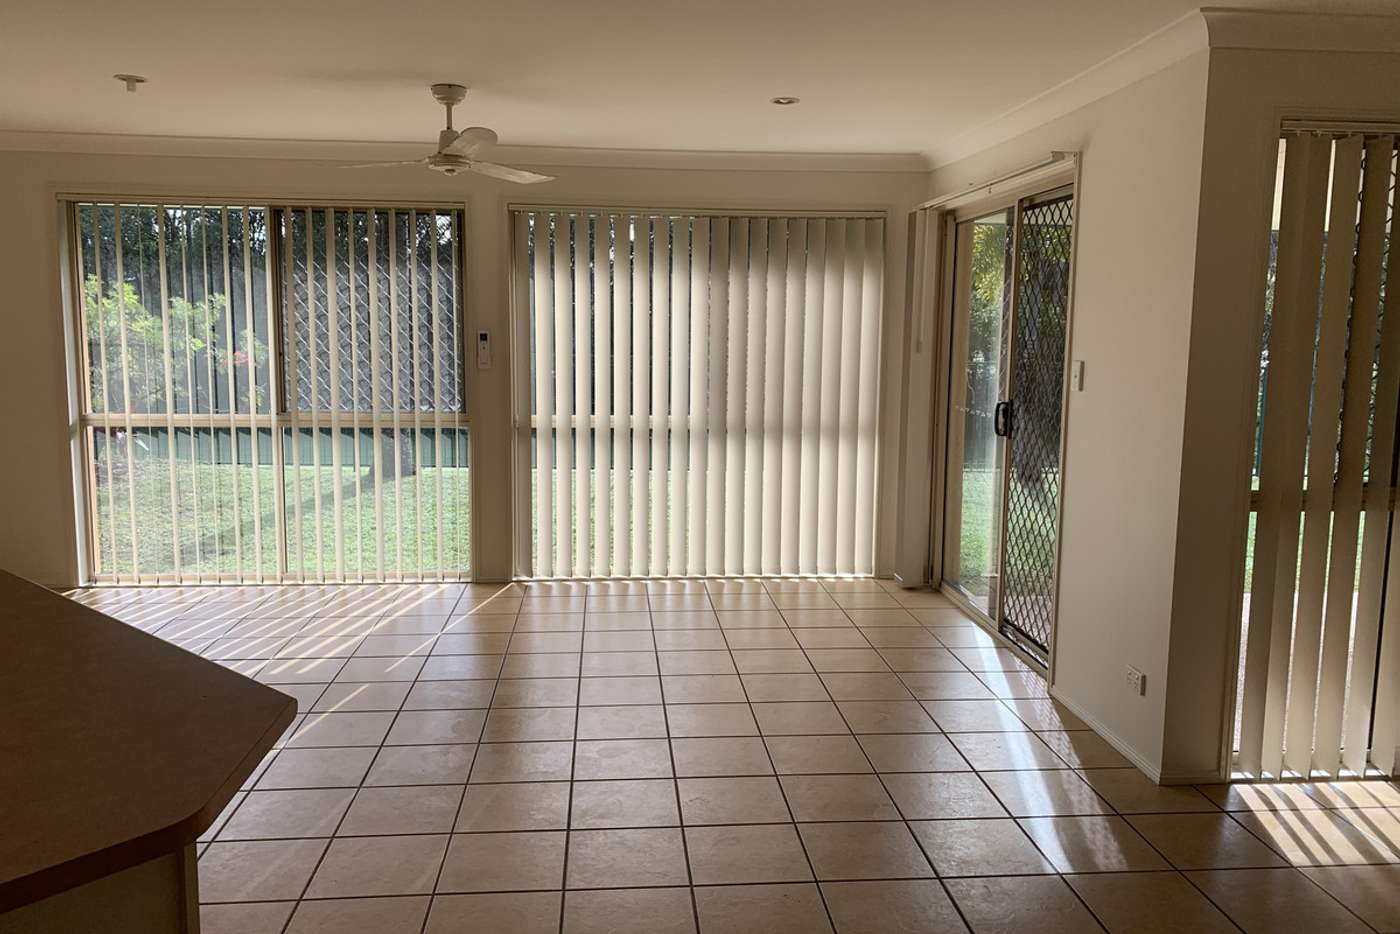 Seventh view of Homely house listing, 23 Oakgrove Way, Sippy Downs QLD 4556